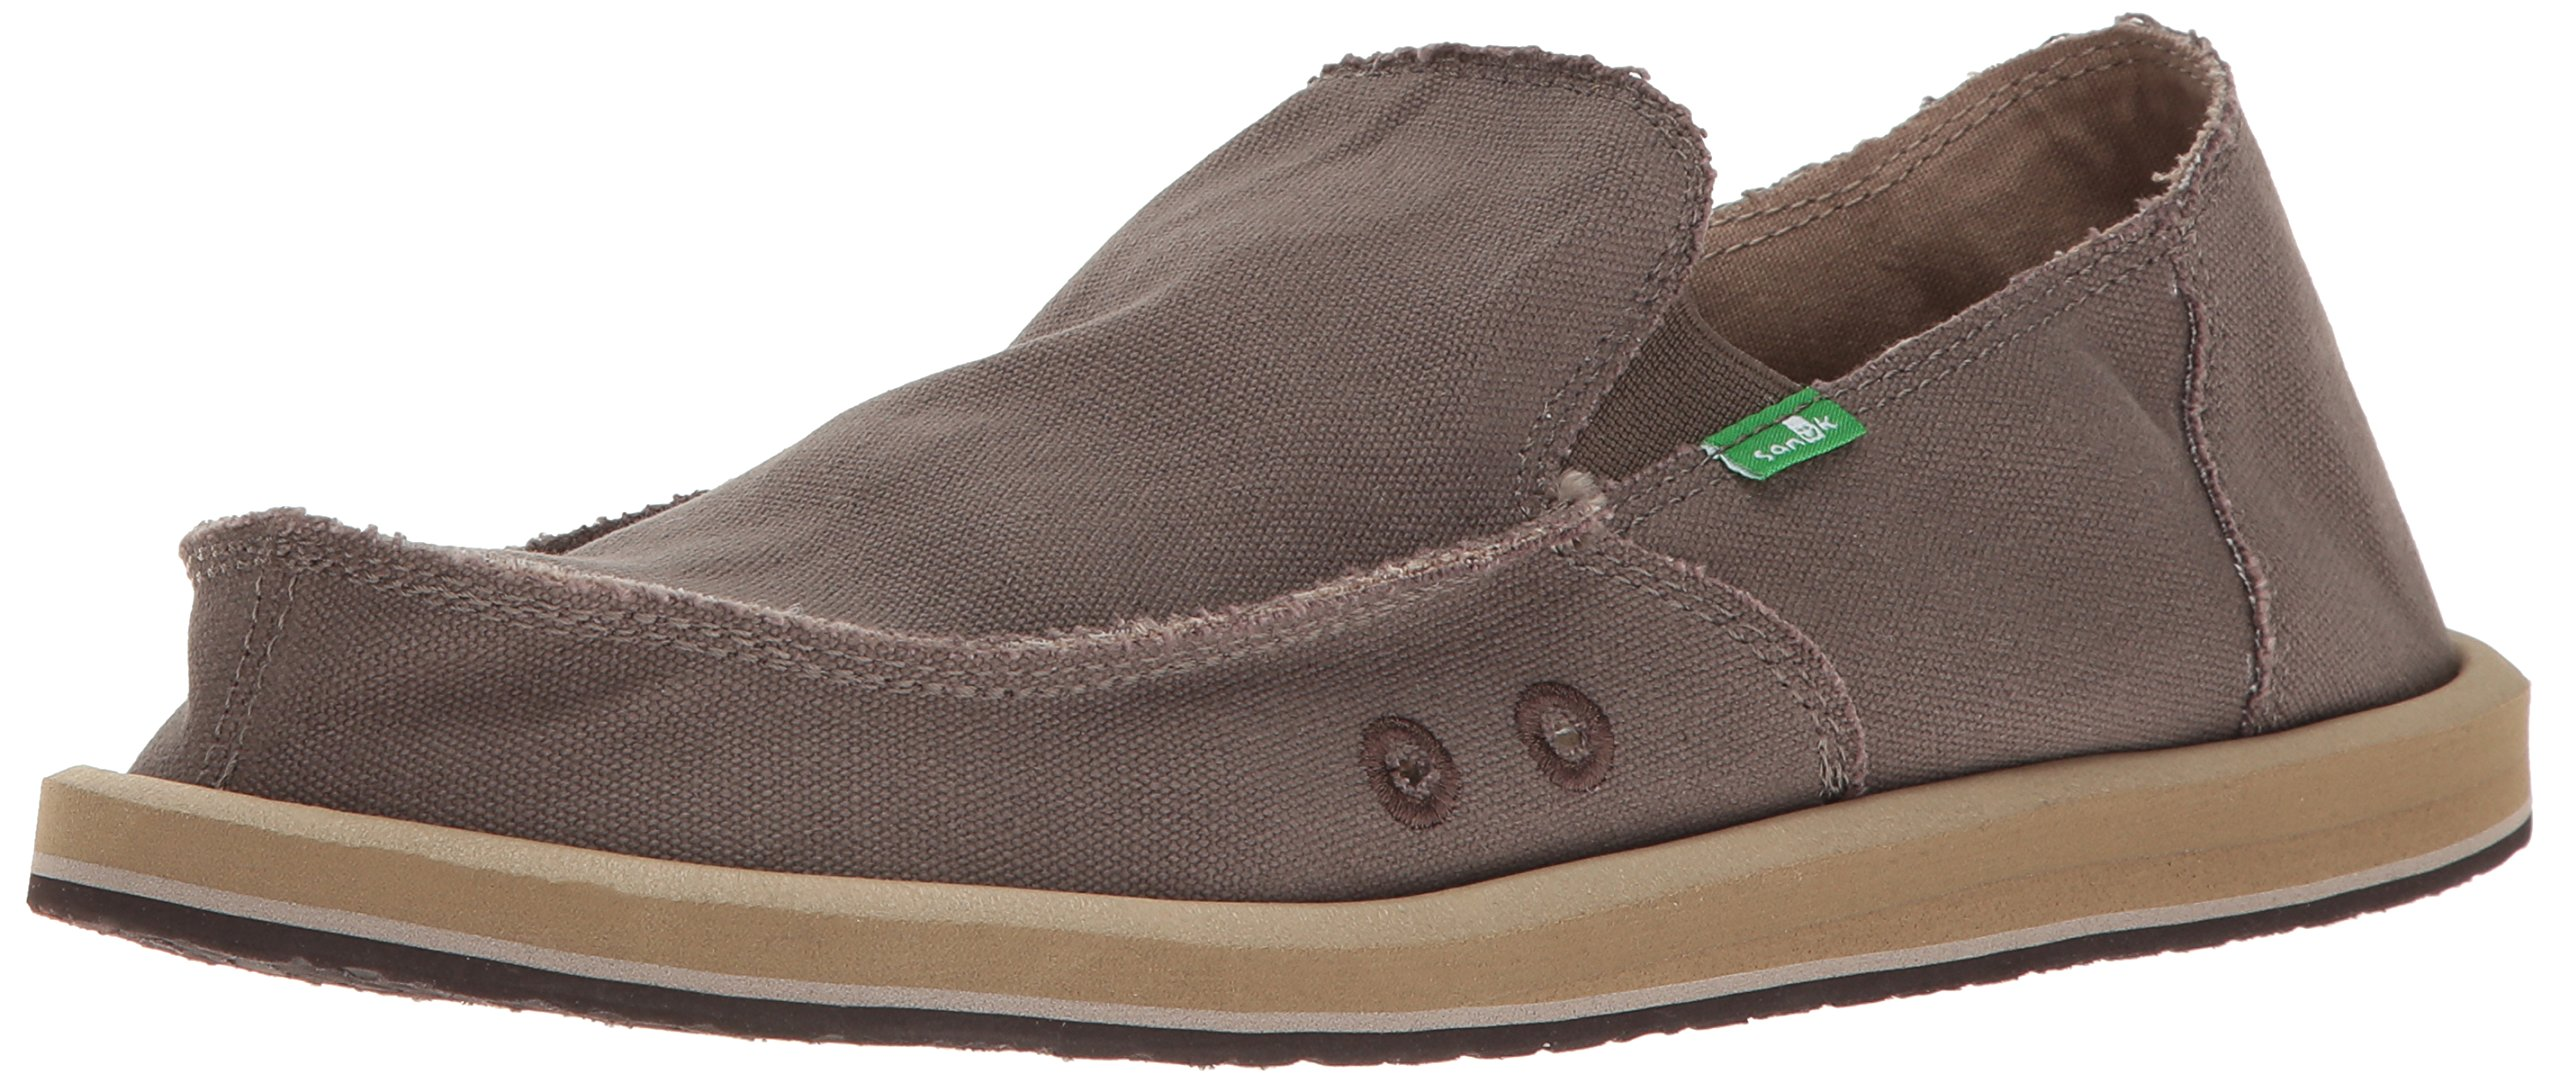 Sanuk Men's Vagabond Slip On, Brindle, 14 M US by Sanuk